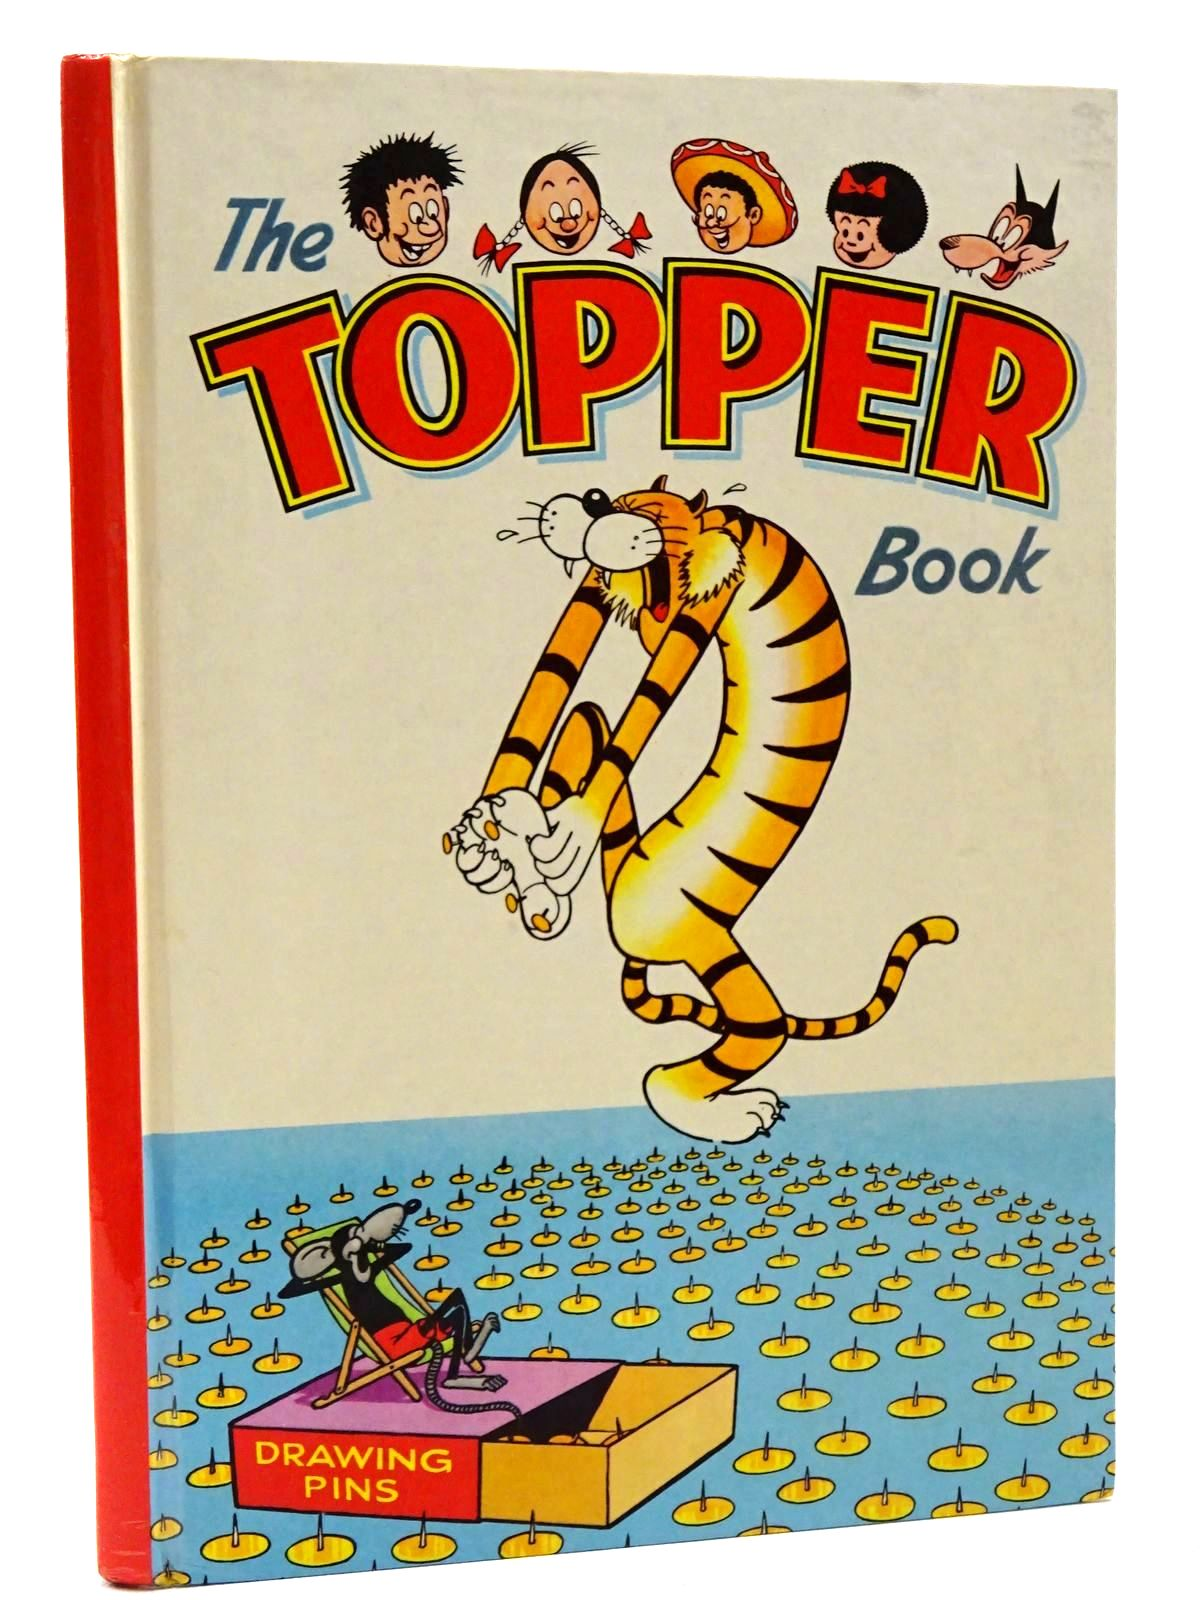 Photo of THE TOPPER BOOK 1963 published by D.C. Thomson & Co Ltd. (STOCK CODE: 1317228)  for sale by Stella & Rose's Books